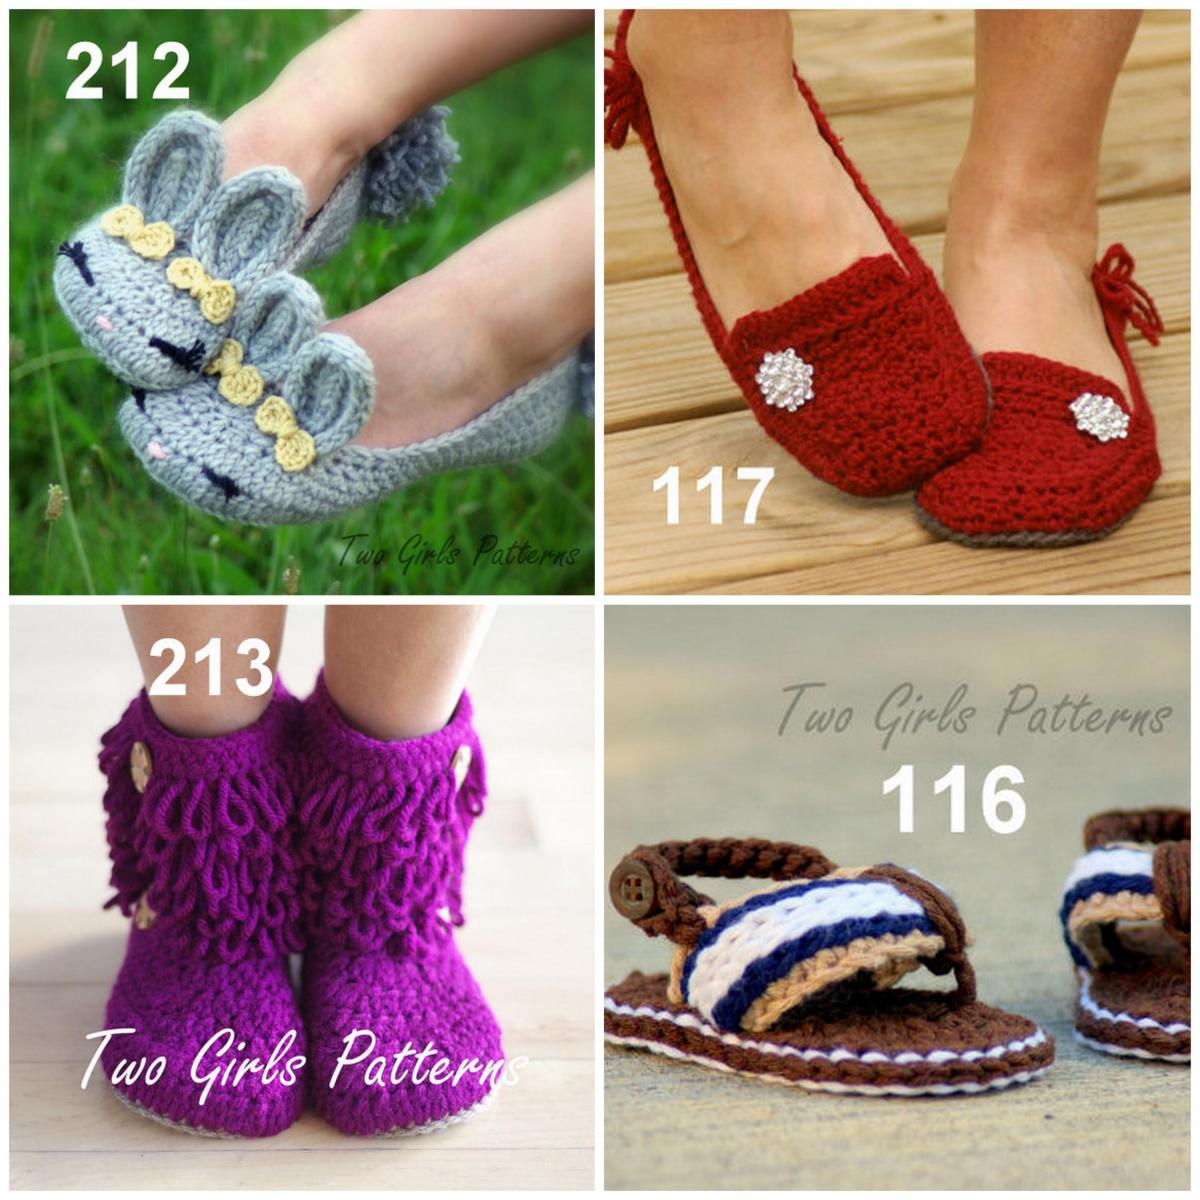 Crochet patterns 2 for 10.00 combo deal